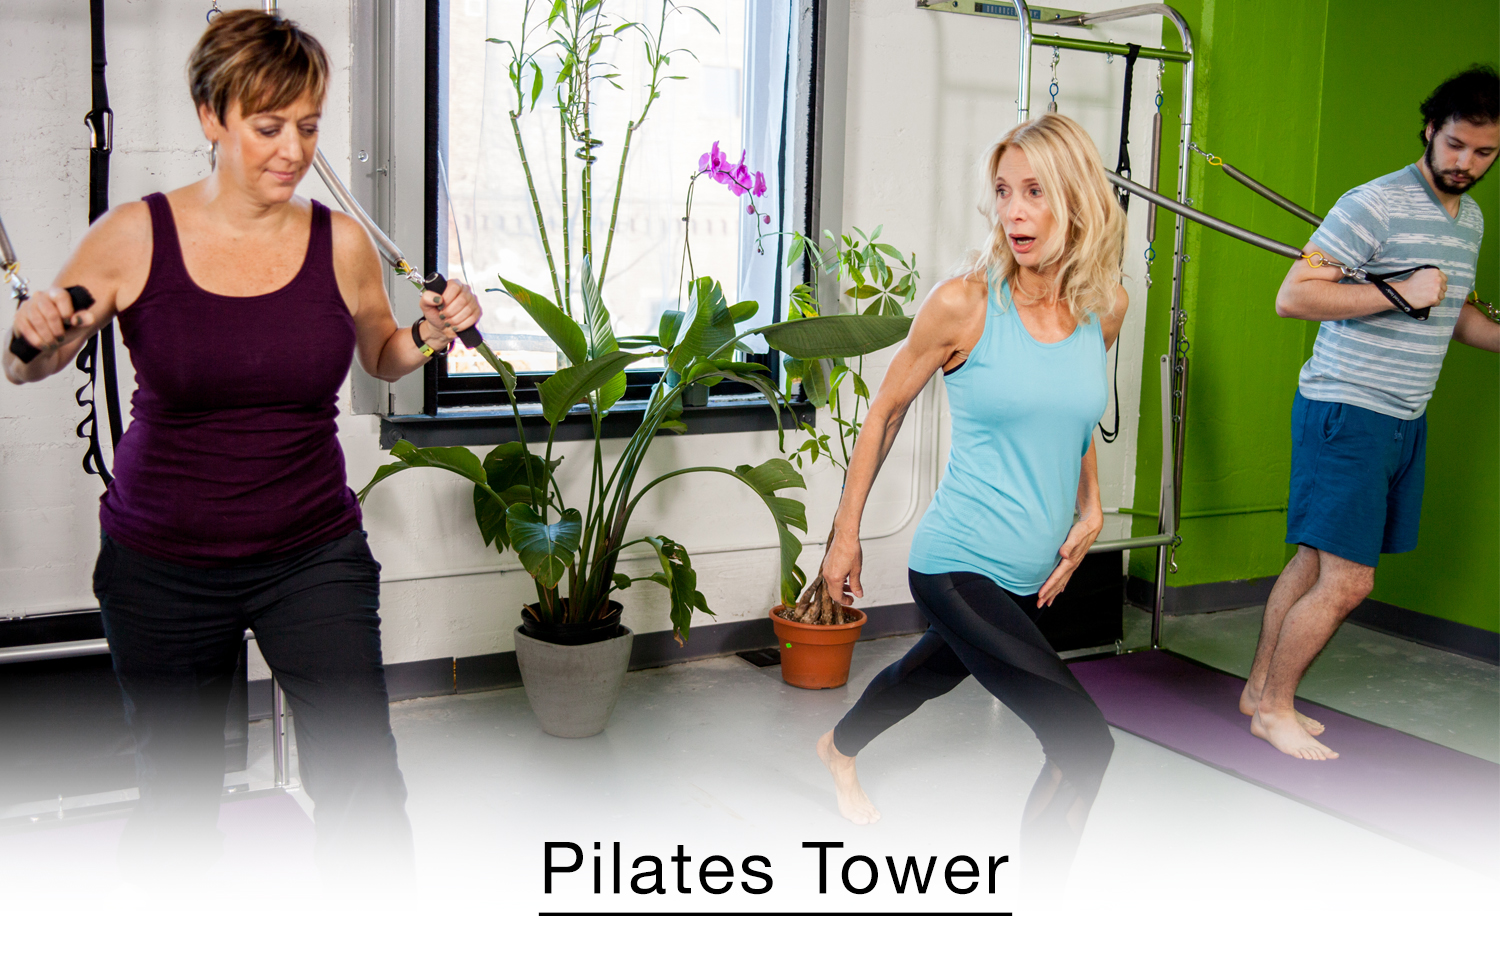 The Pilates Tower workout helps build long, lean musculature and increases range of motion and unilateral movement by utilizing springs, push through bar, and pull down bar. A perfect option for beginners and students of all ages and experiences. Build strength, flexibility, and muscular endurance.Check out our  schedule page  to see when the next class is!